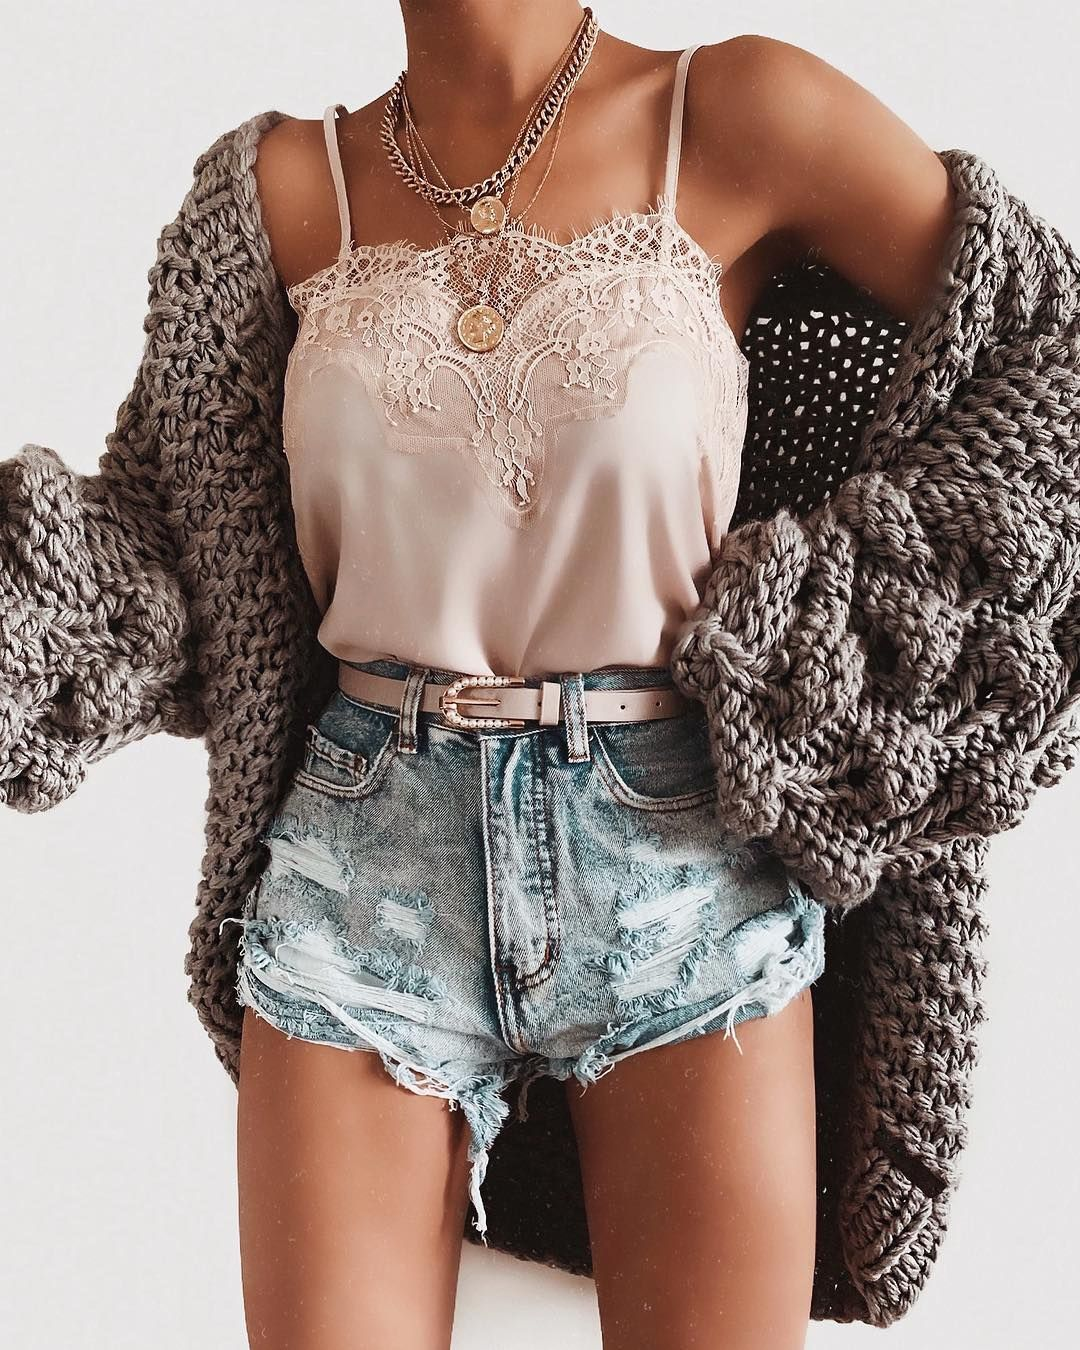 """Talia on Instagram: """"The cutest shorts + necklace via @oohlaluxe #oohlaluxe Shorts: Malibu Distressed Shorts Necklace: Camila Coin Necklace"""""""